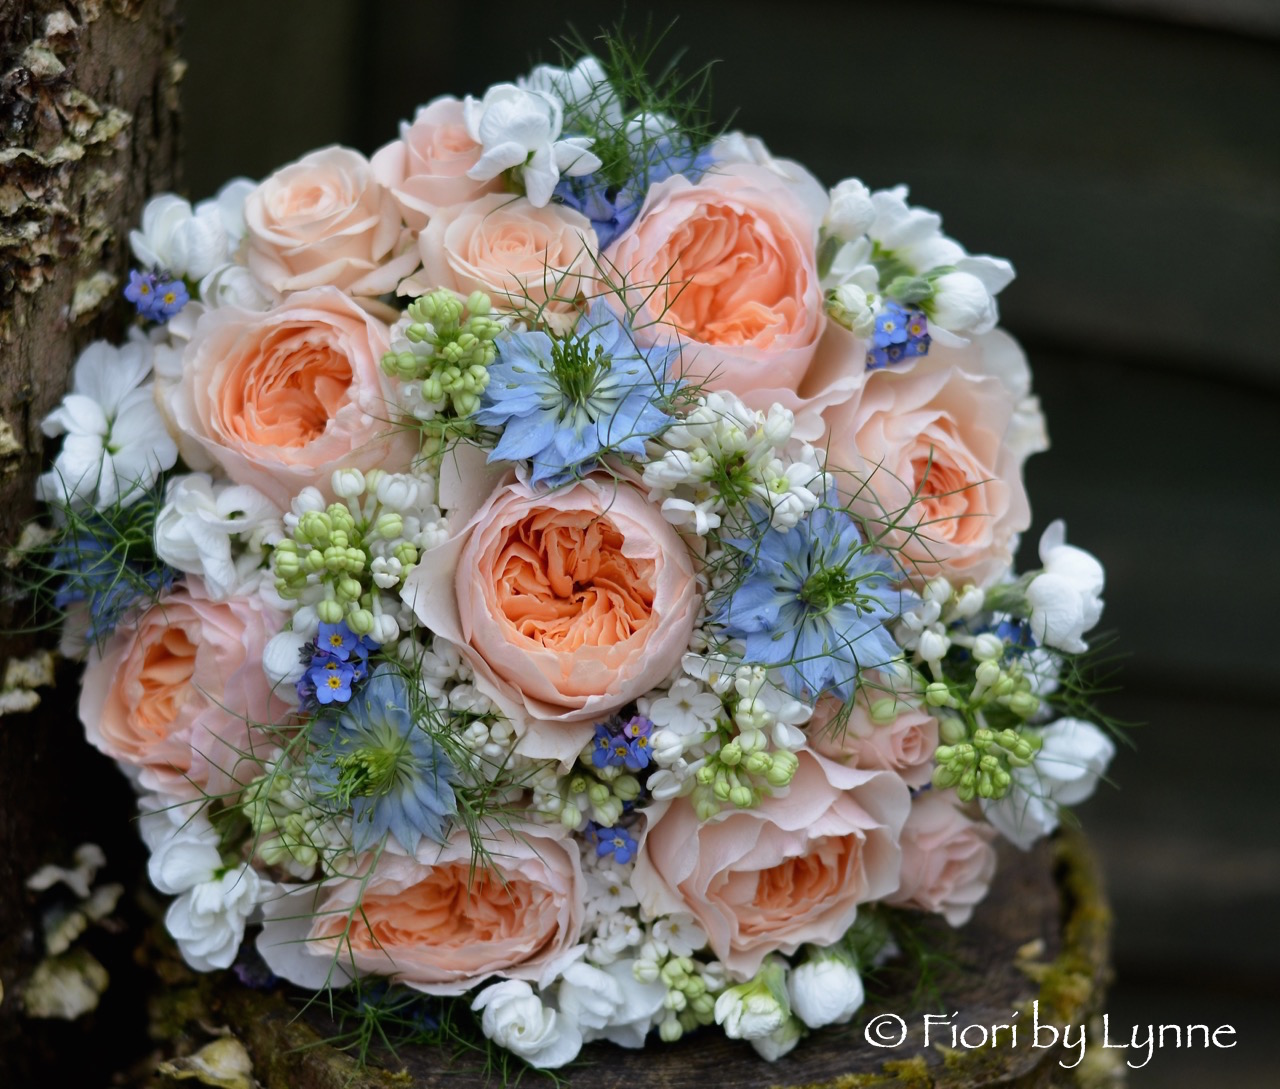 Wedding flowers blog emilys peach and blue wedding flowers emilys peach and blue wedding flowers rownhams house izmirmasajfo